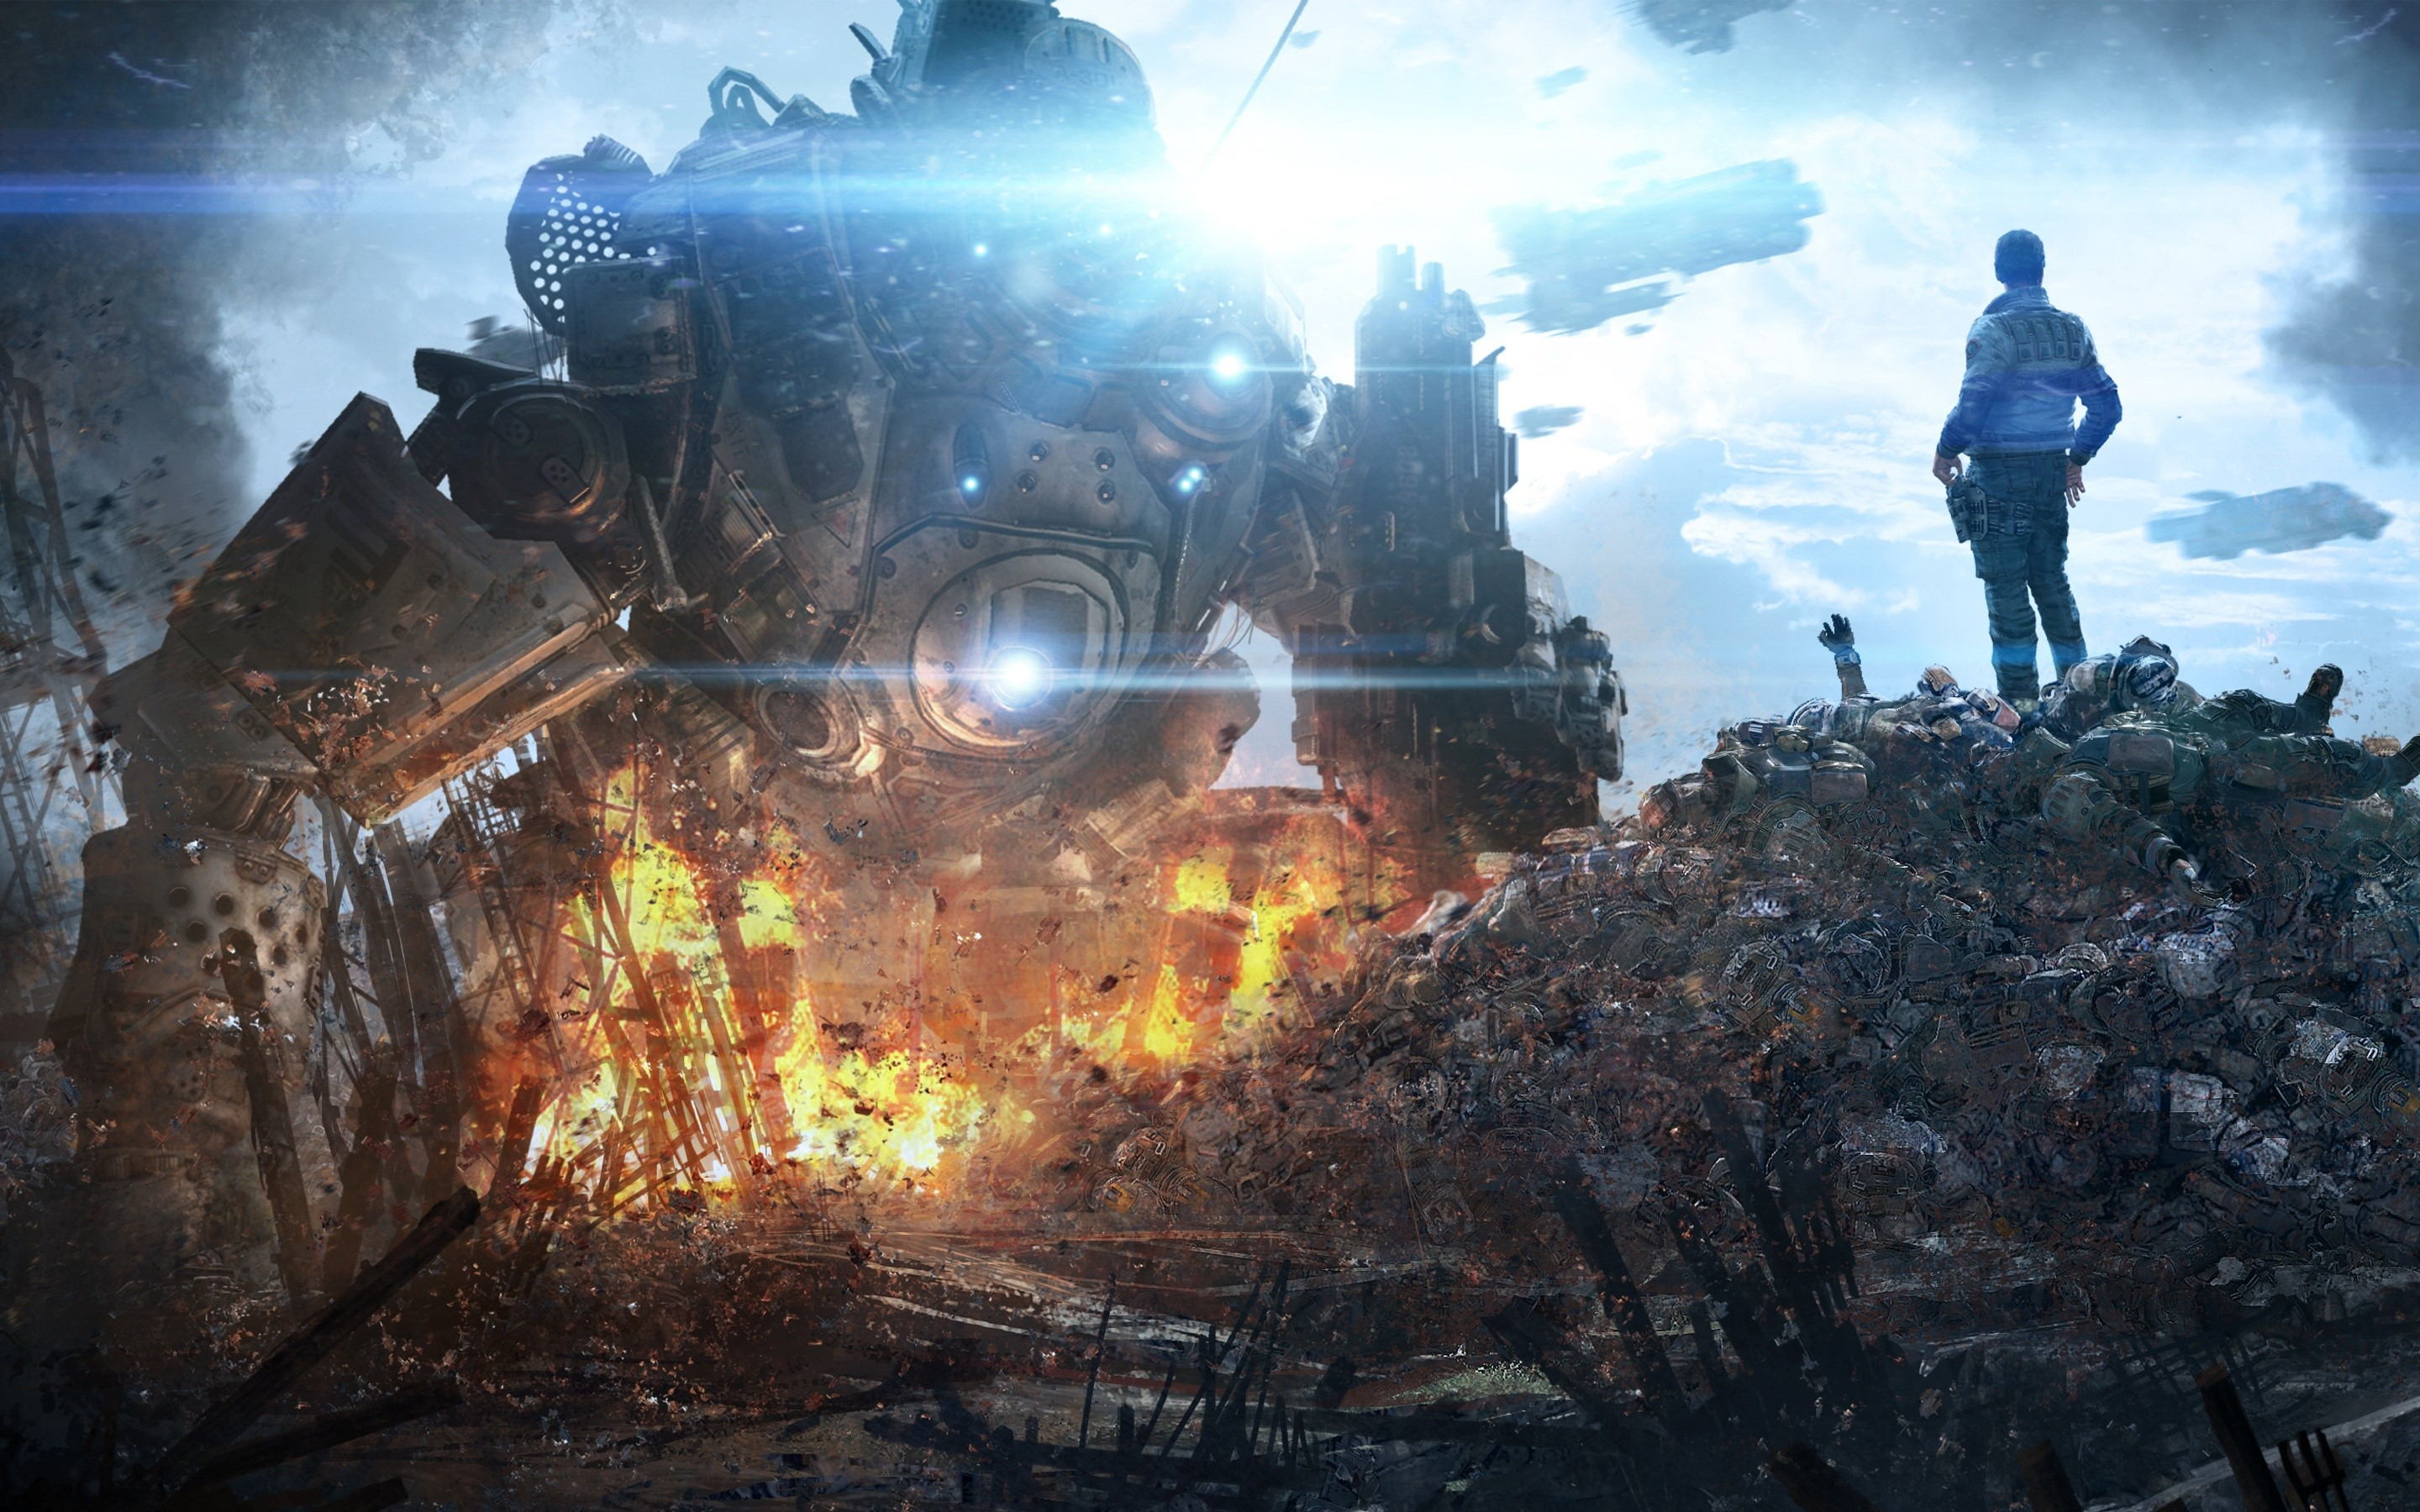 Wallpaper Juego Titanfall Images